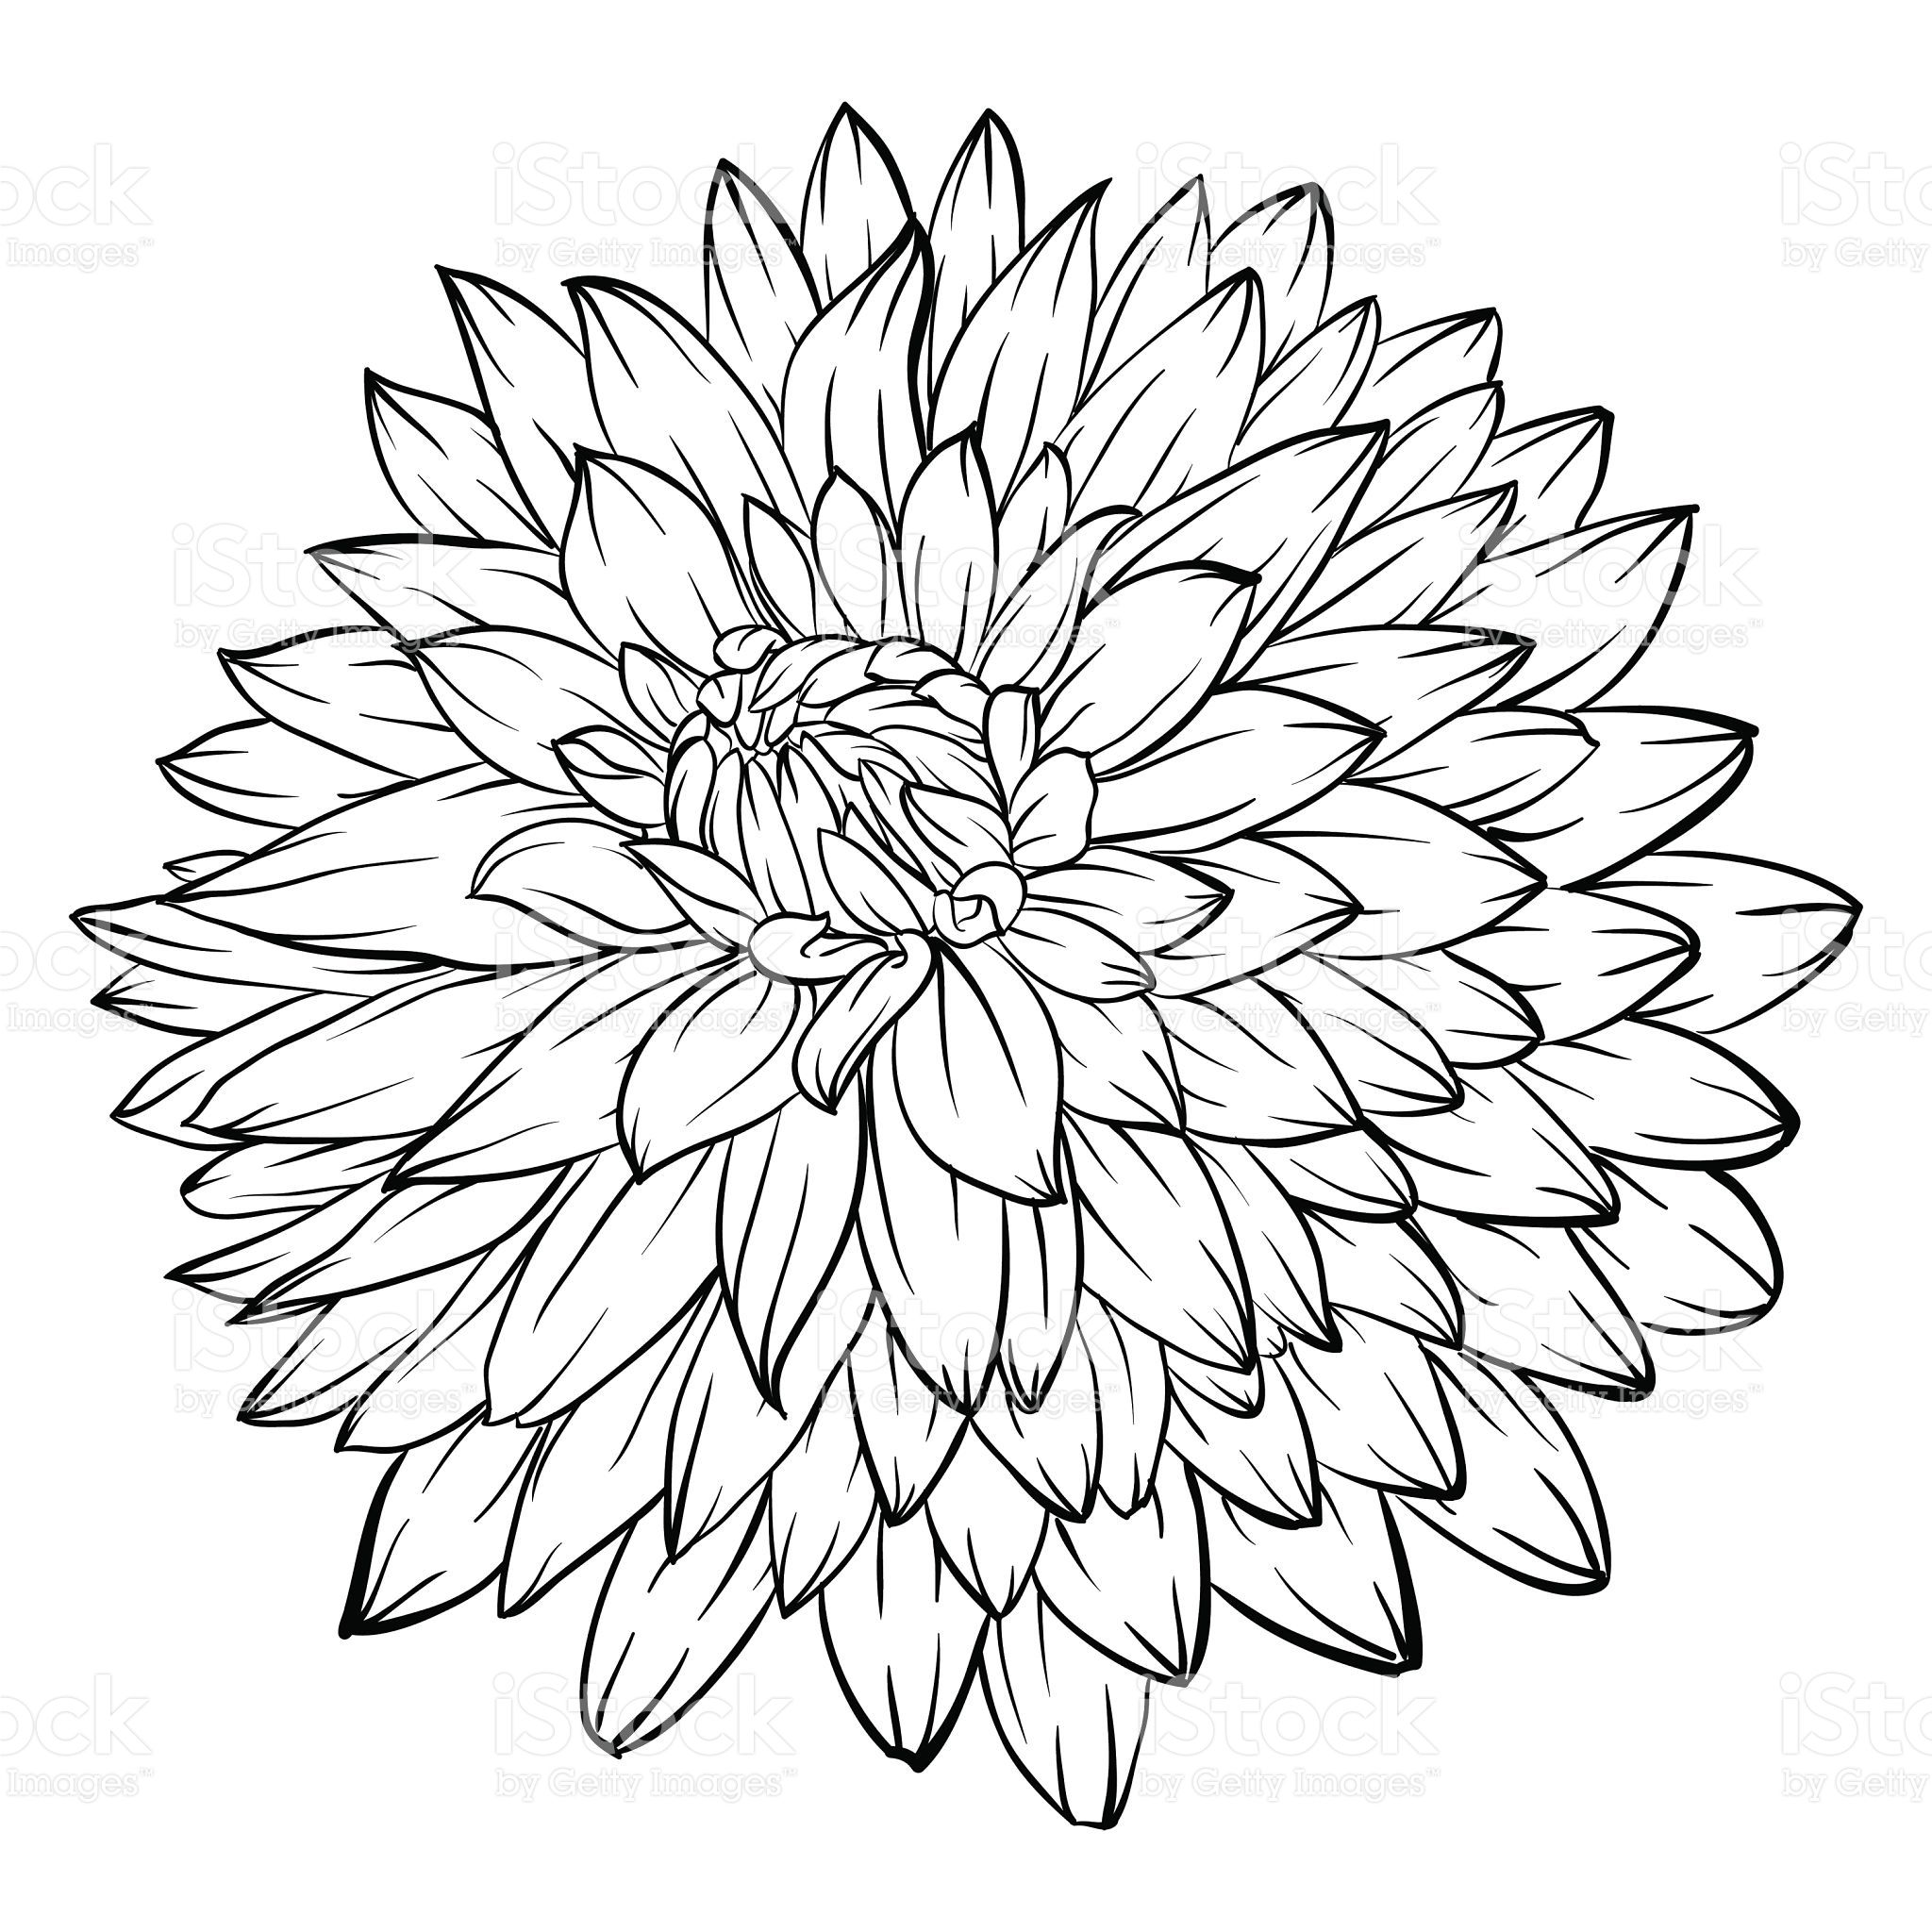 Beautiful Monochrome Black And White Dahlia Flower Isolated On Flower Line Drawings Floral Drawing Flower Drawing